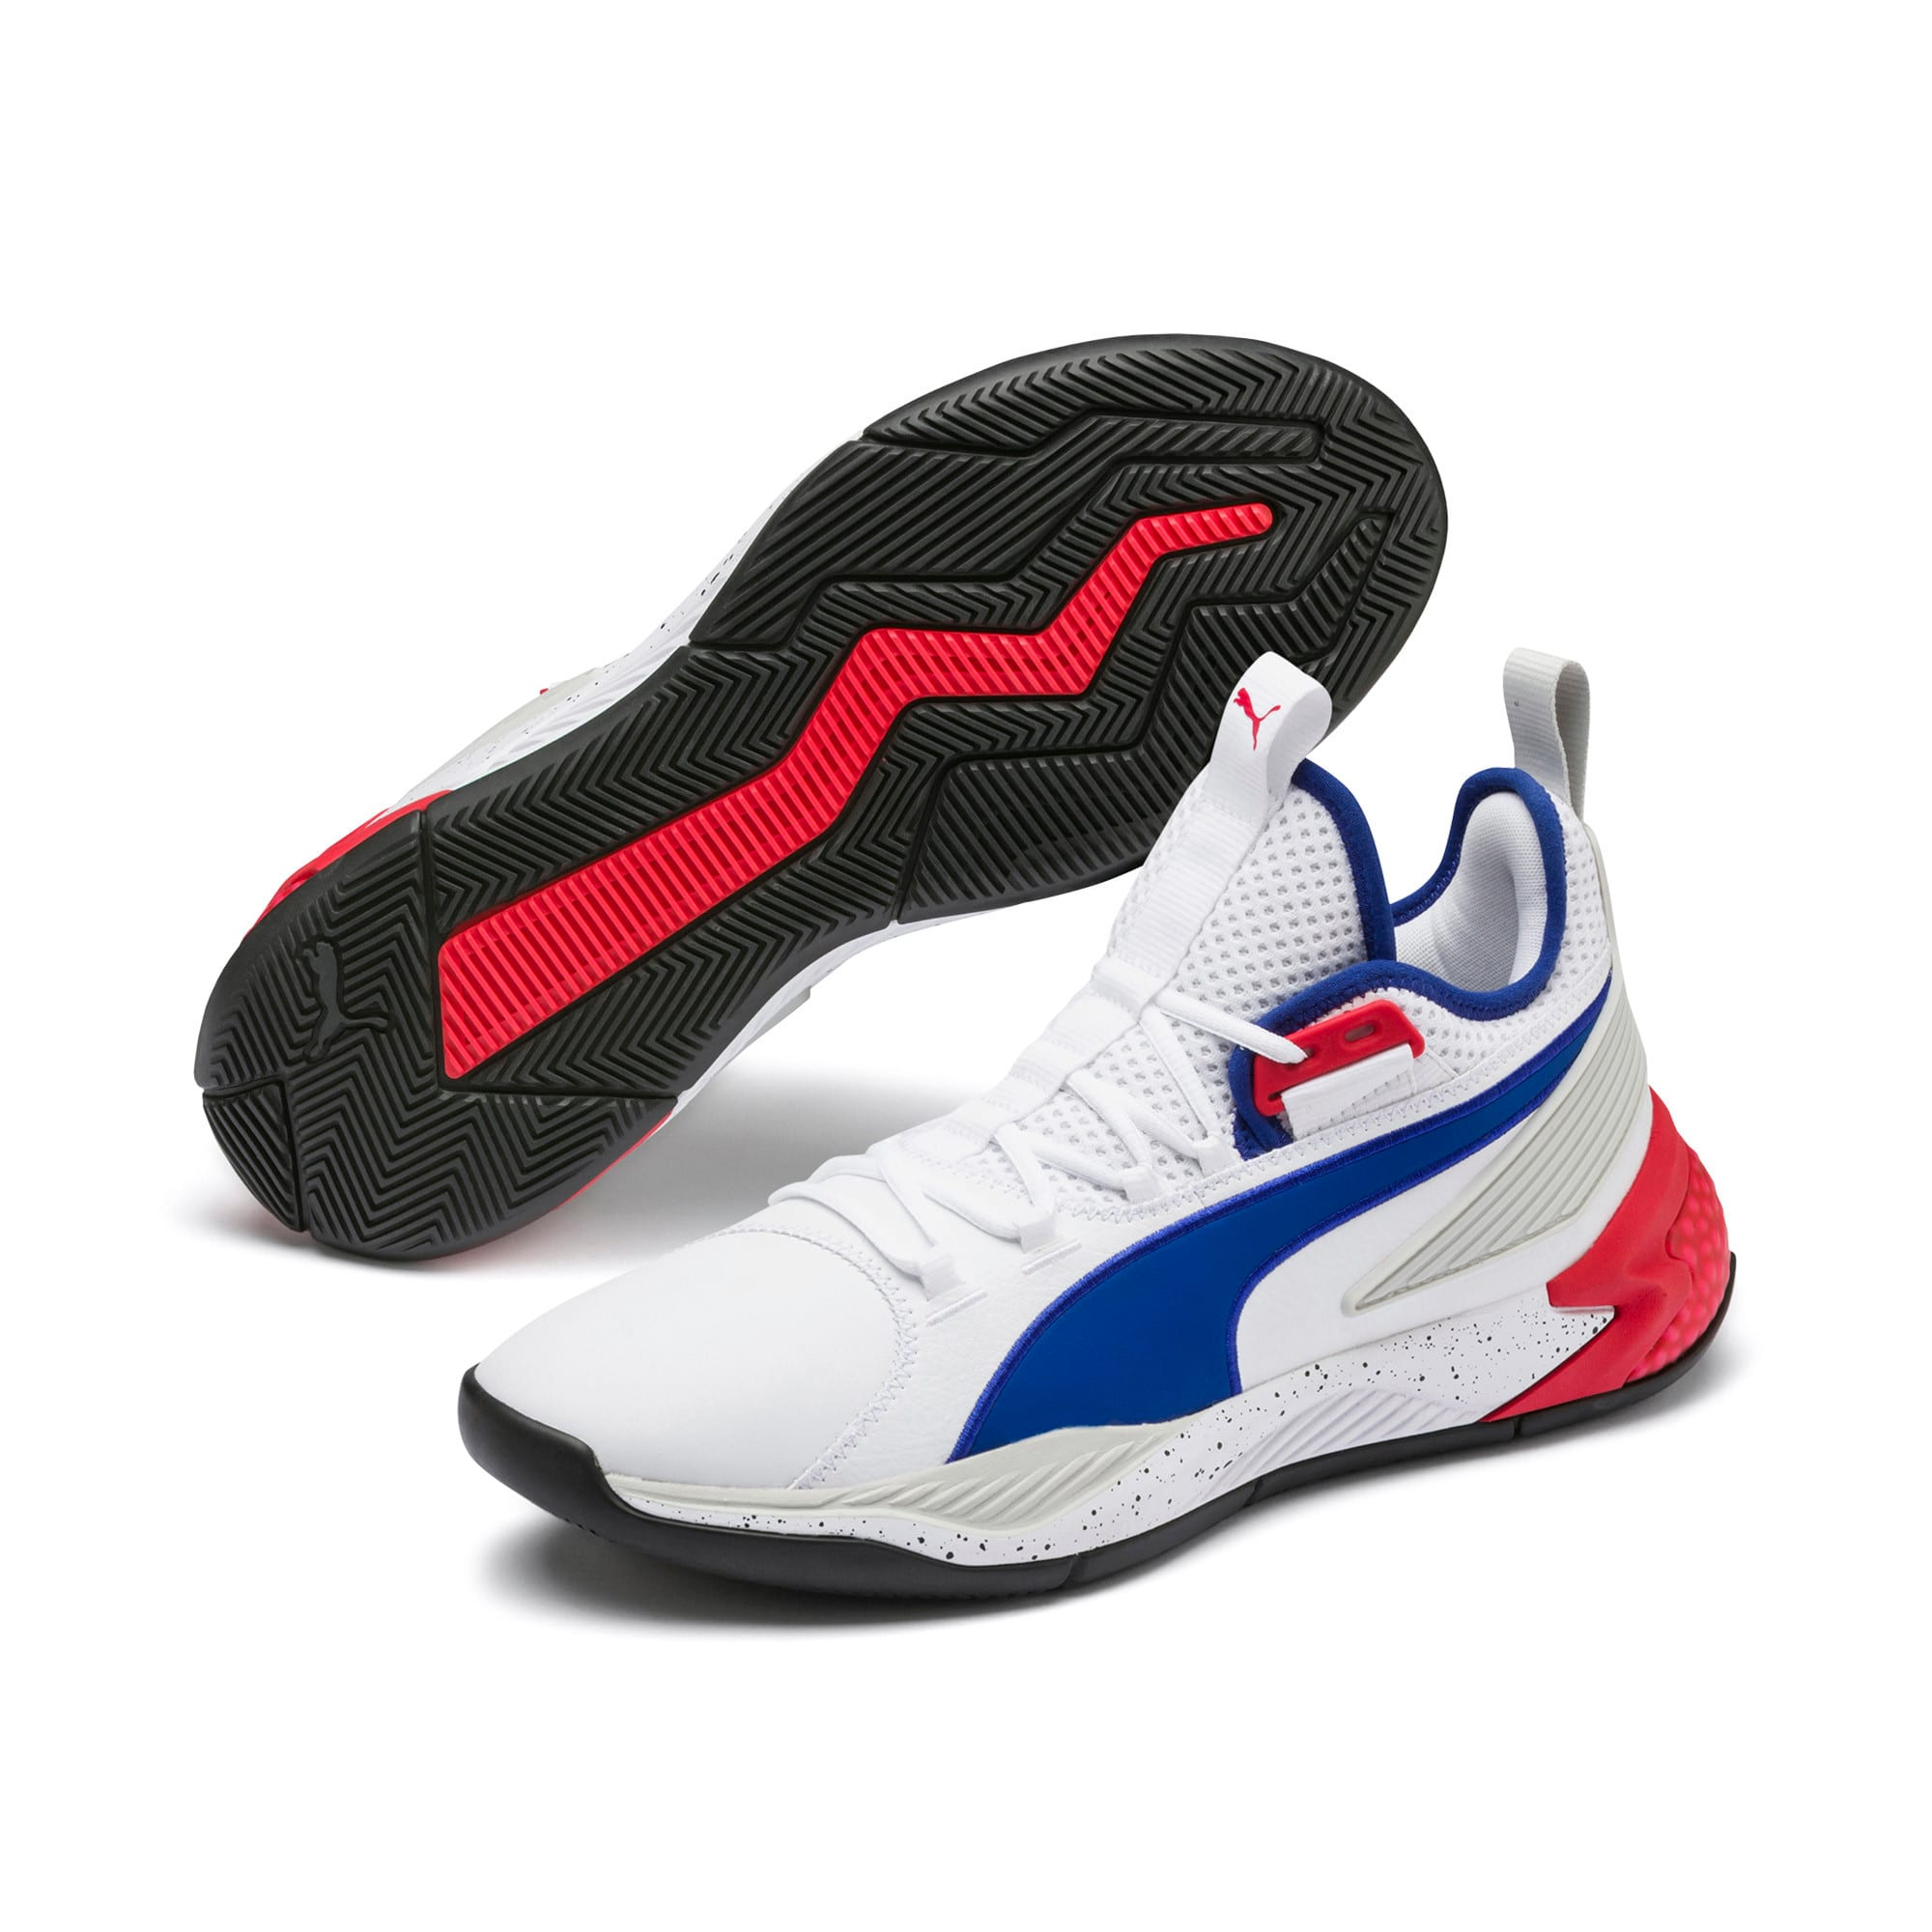 Thumbnail 2 of Uproar Palace Guard Men's Basketball Shoes, Puma White-Surf The Web, medium